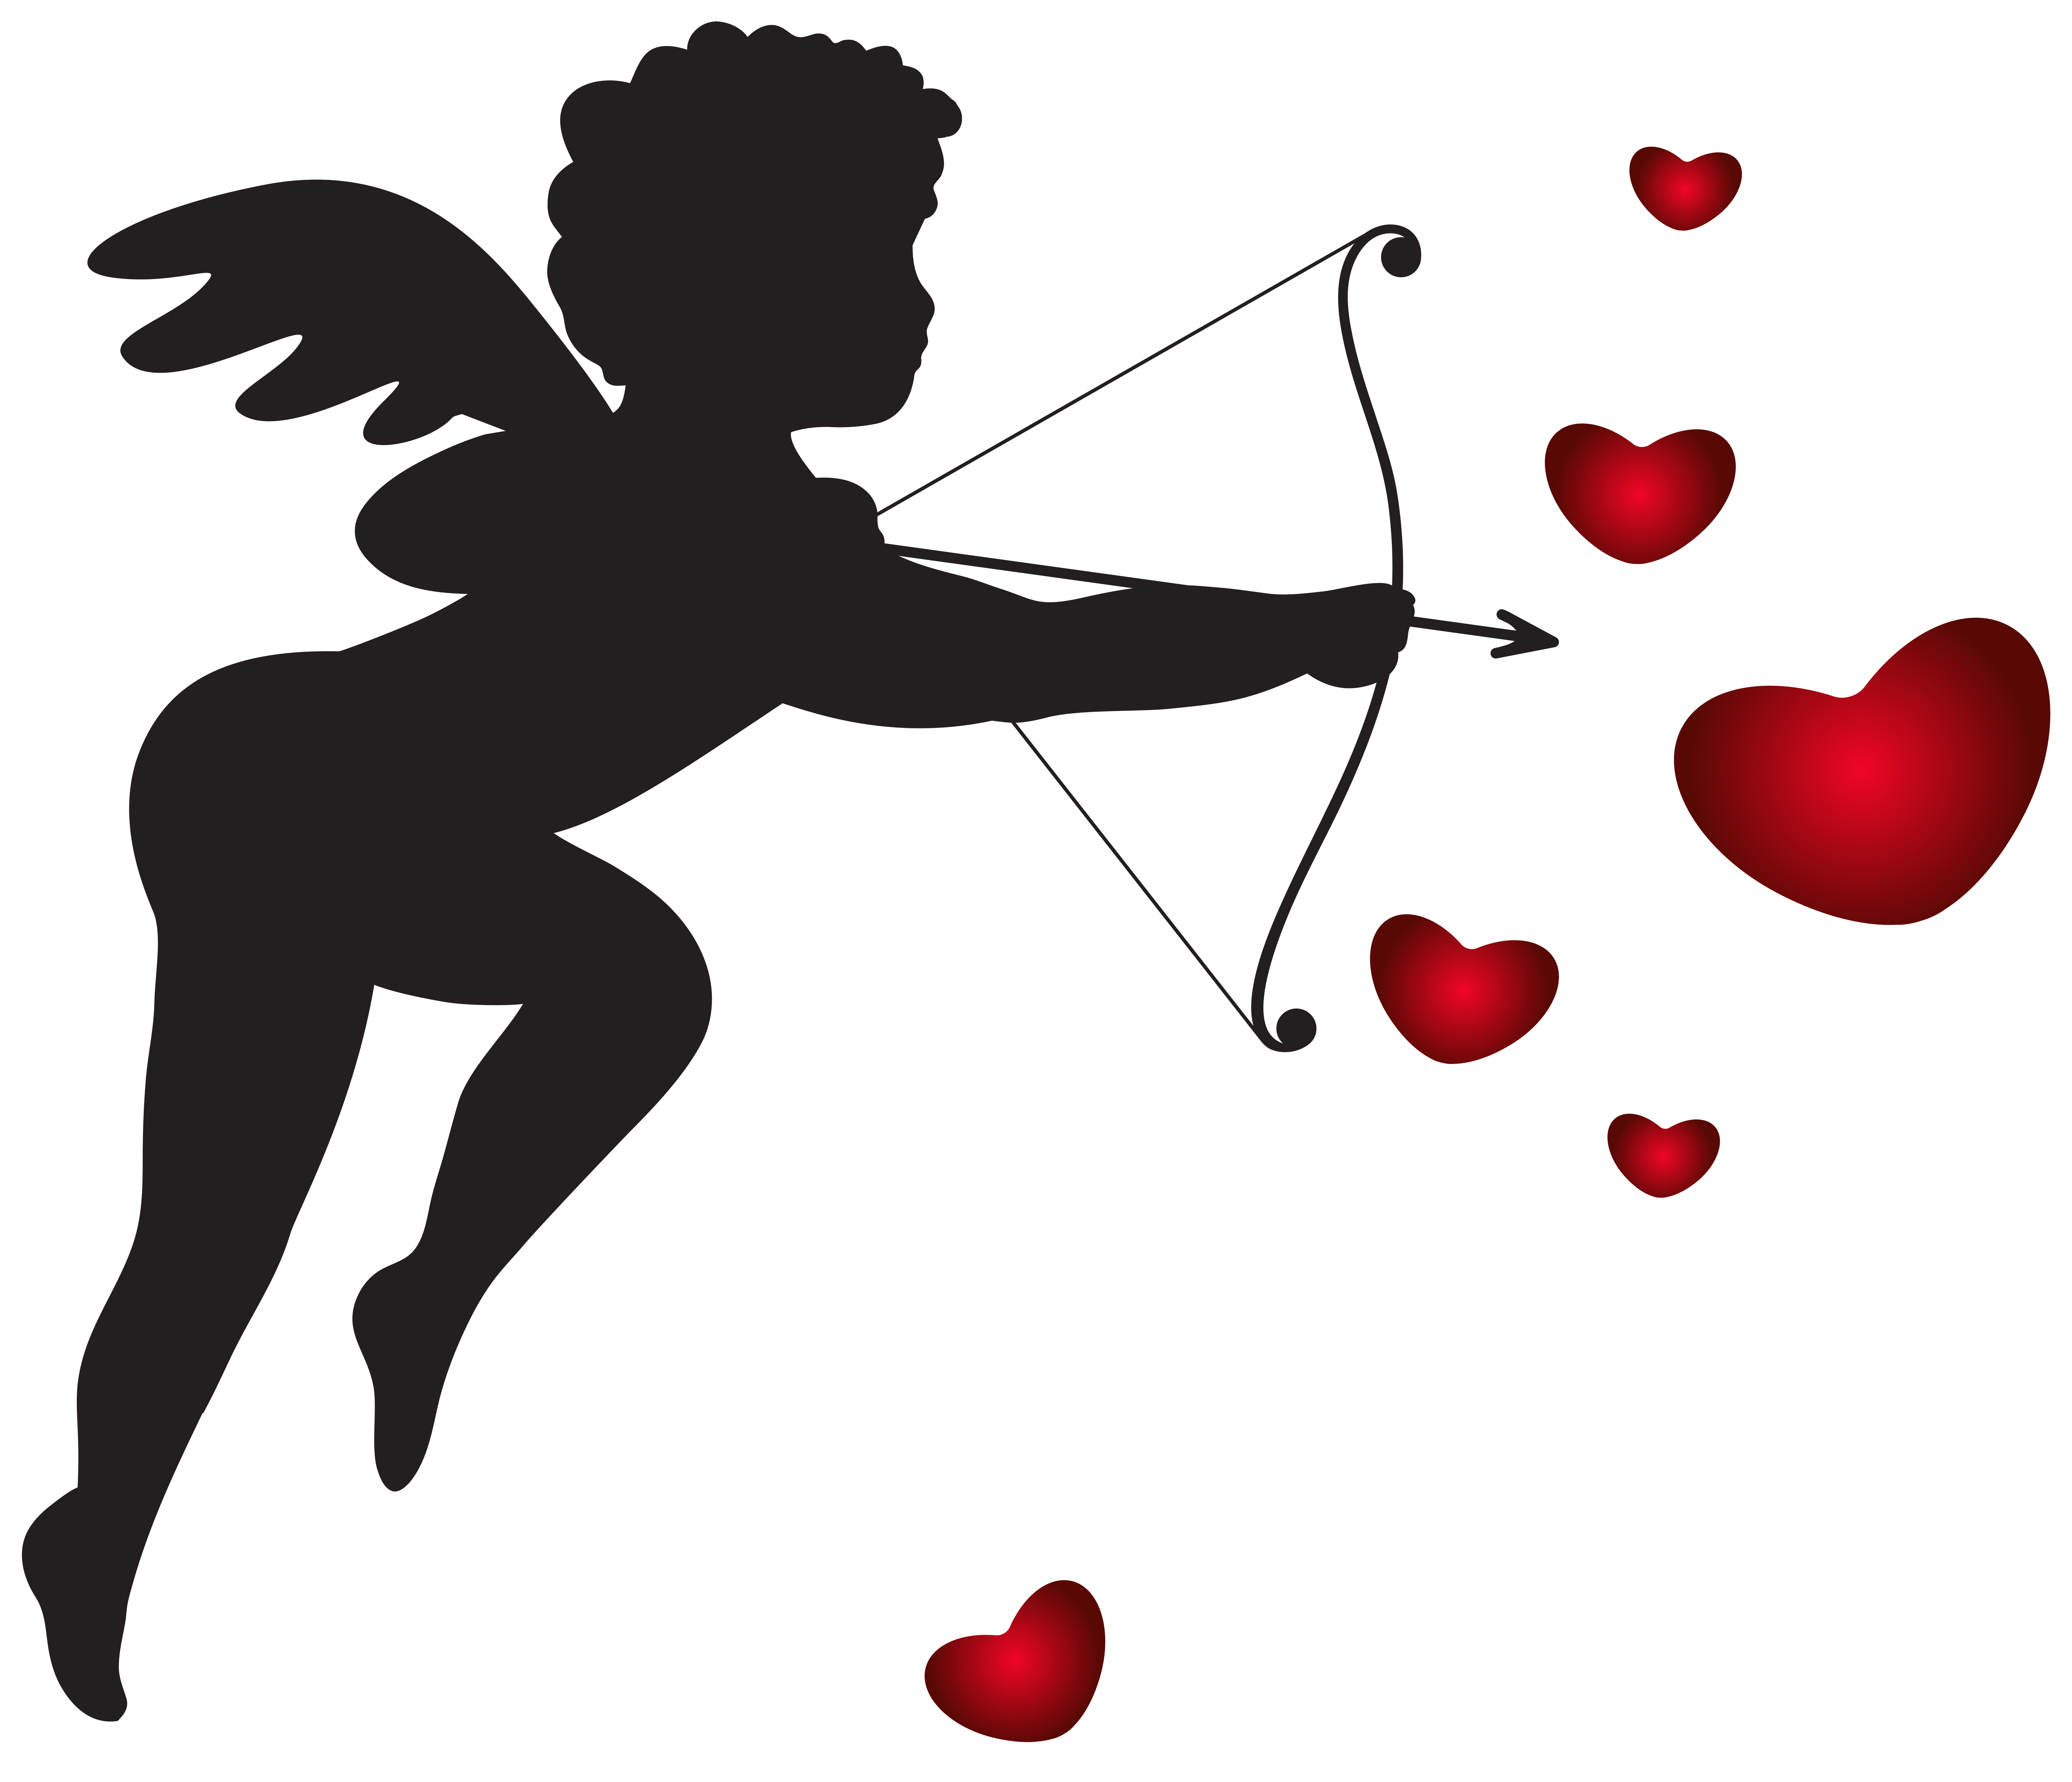 8000x6881 Cupid With Bow And Hearts Transparent Png Clip Art Imagu200b Gallery